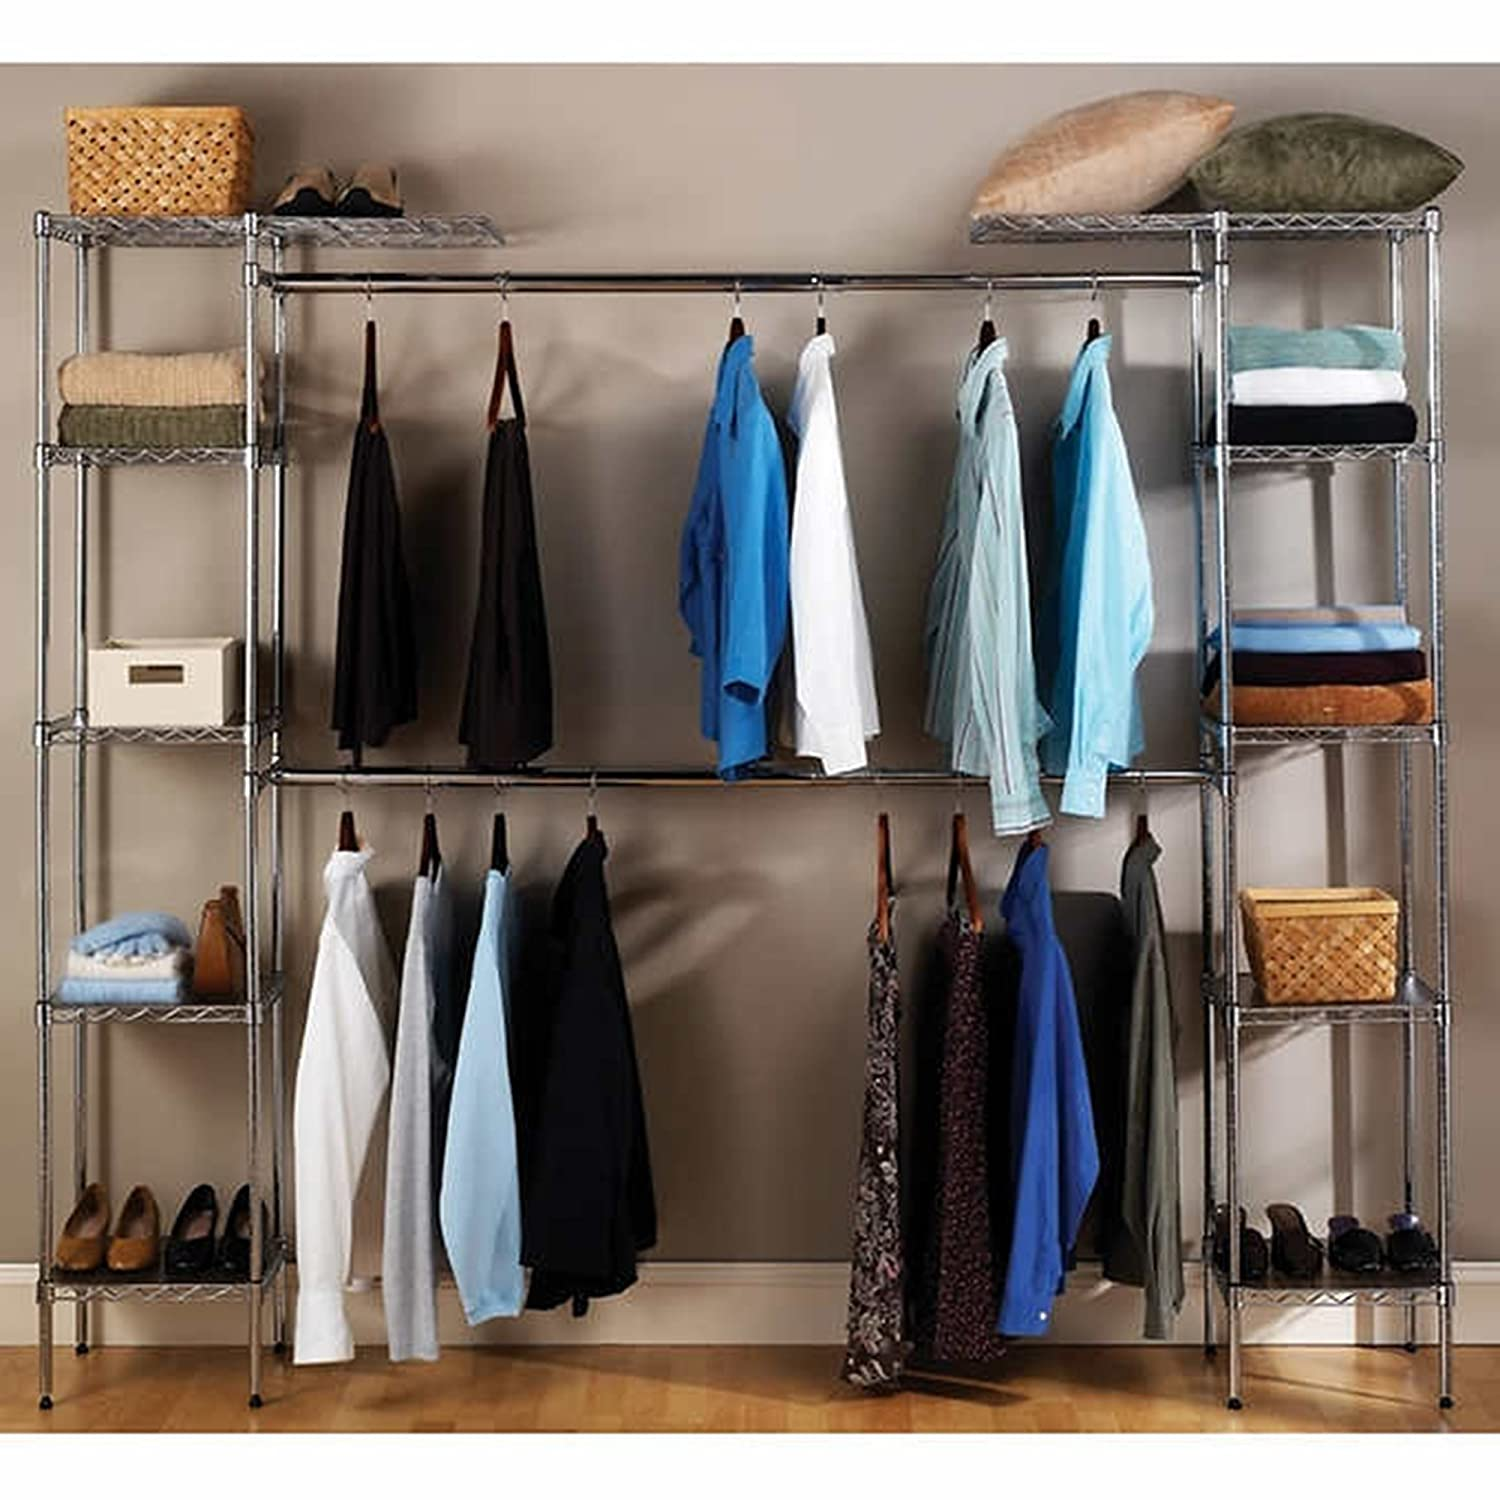 closet seville organizers costco bedroom storage expandable ideas closets with system shelves systems shelf drawers home classics oranization reorganization units organizer wire for